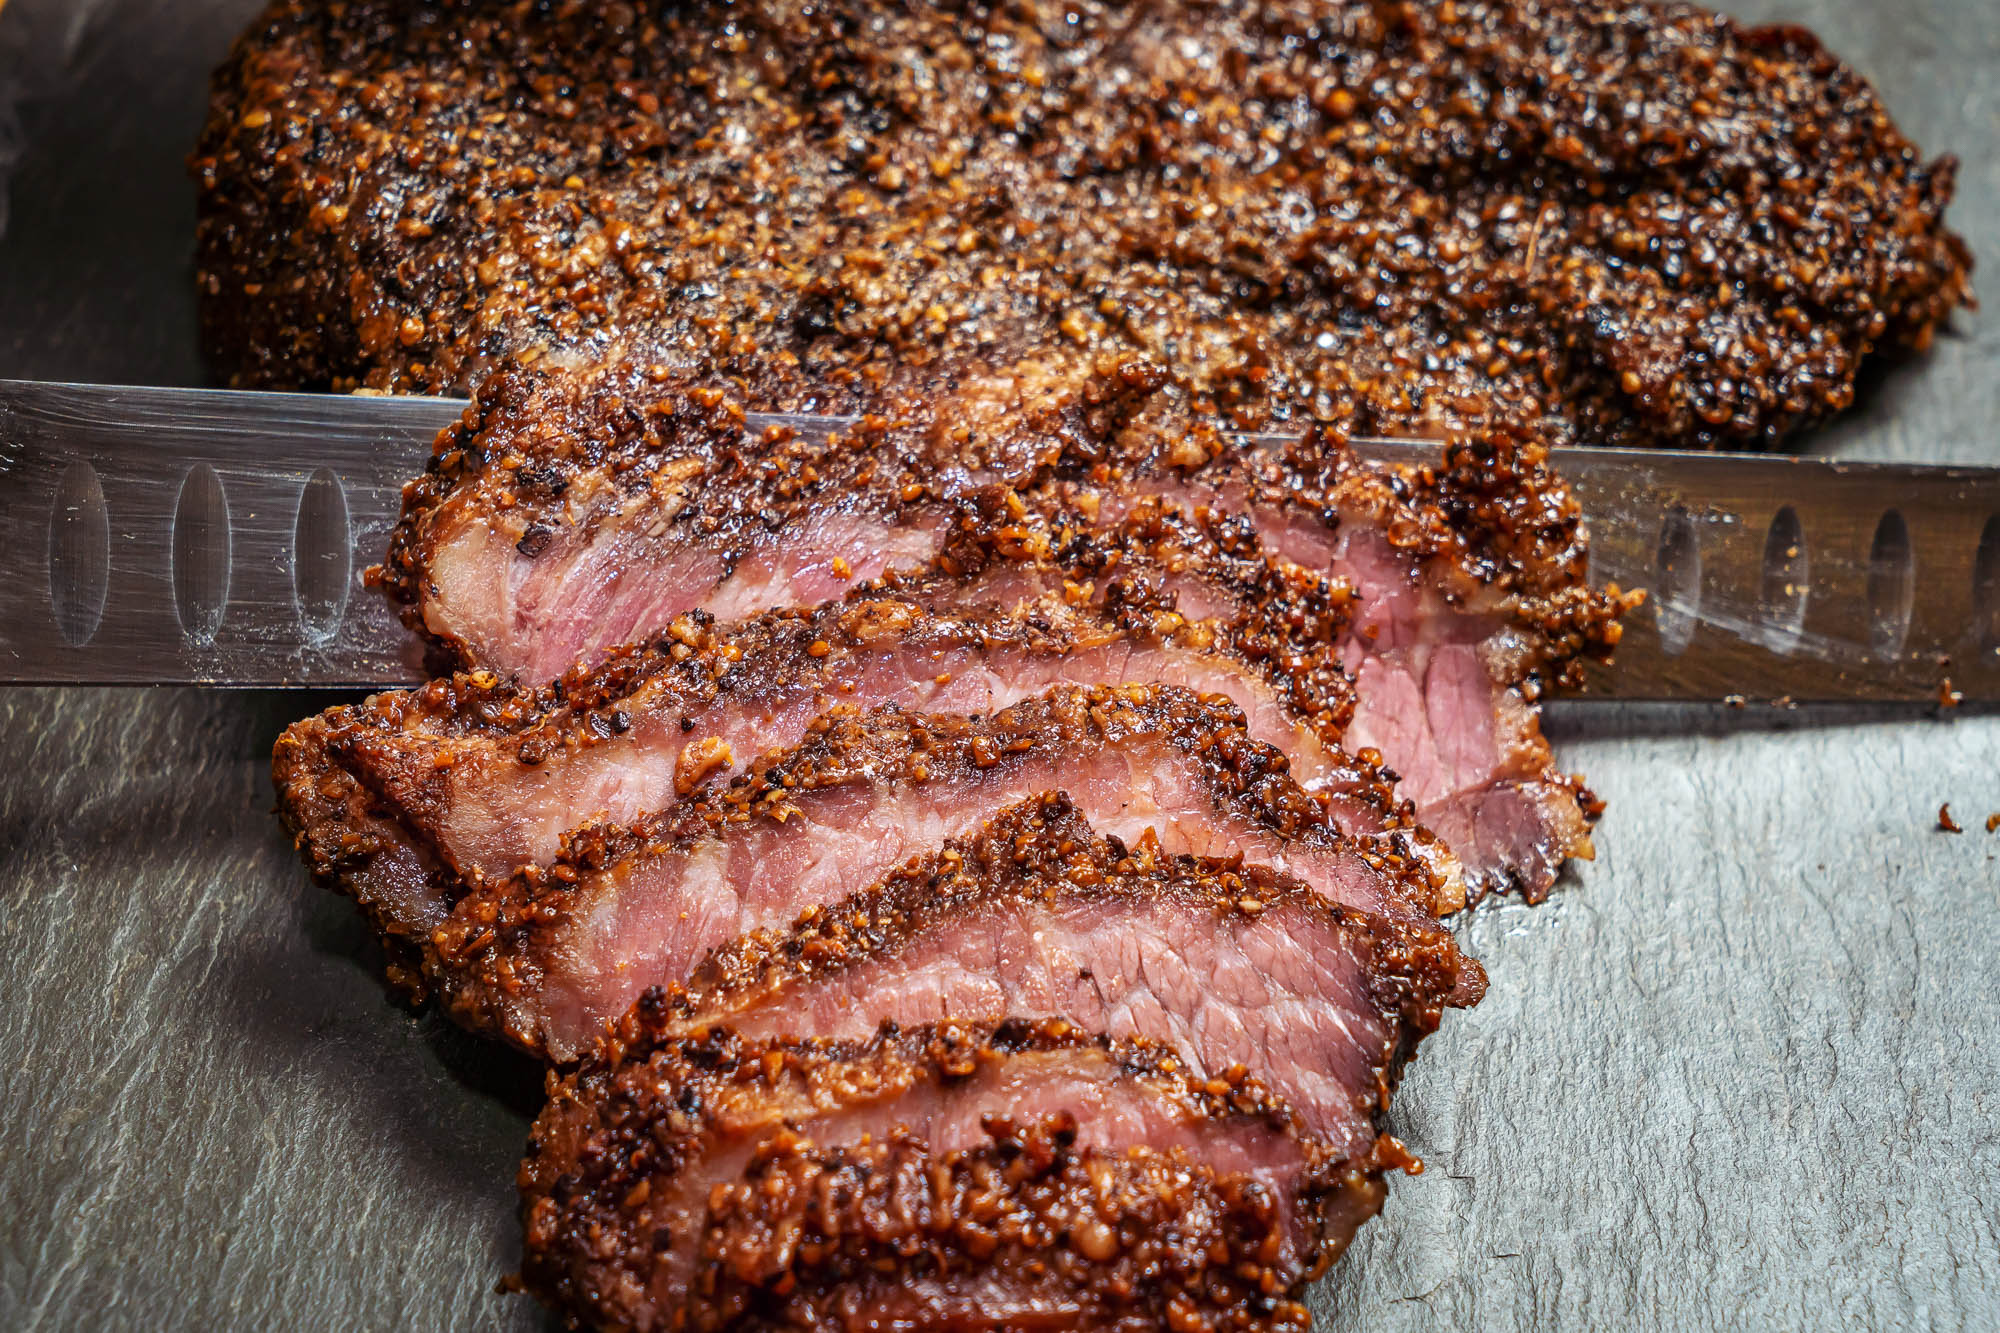 Pulkies Hand-Sliced Brisket